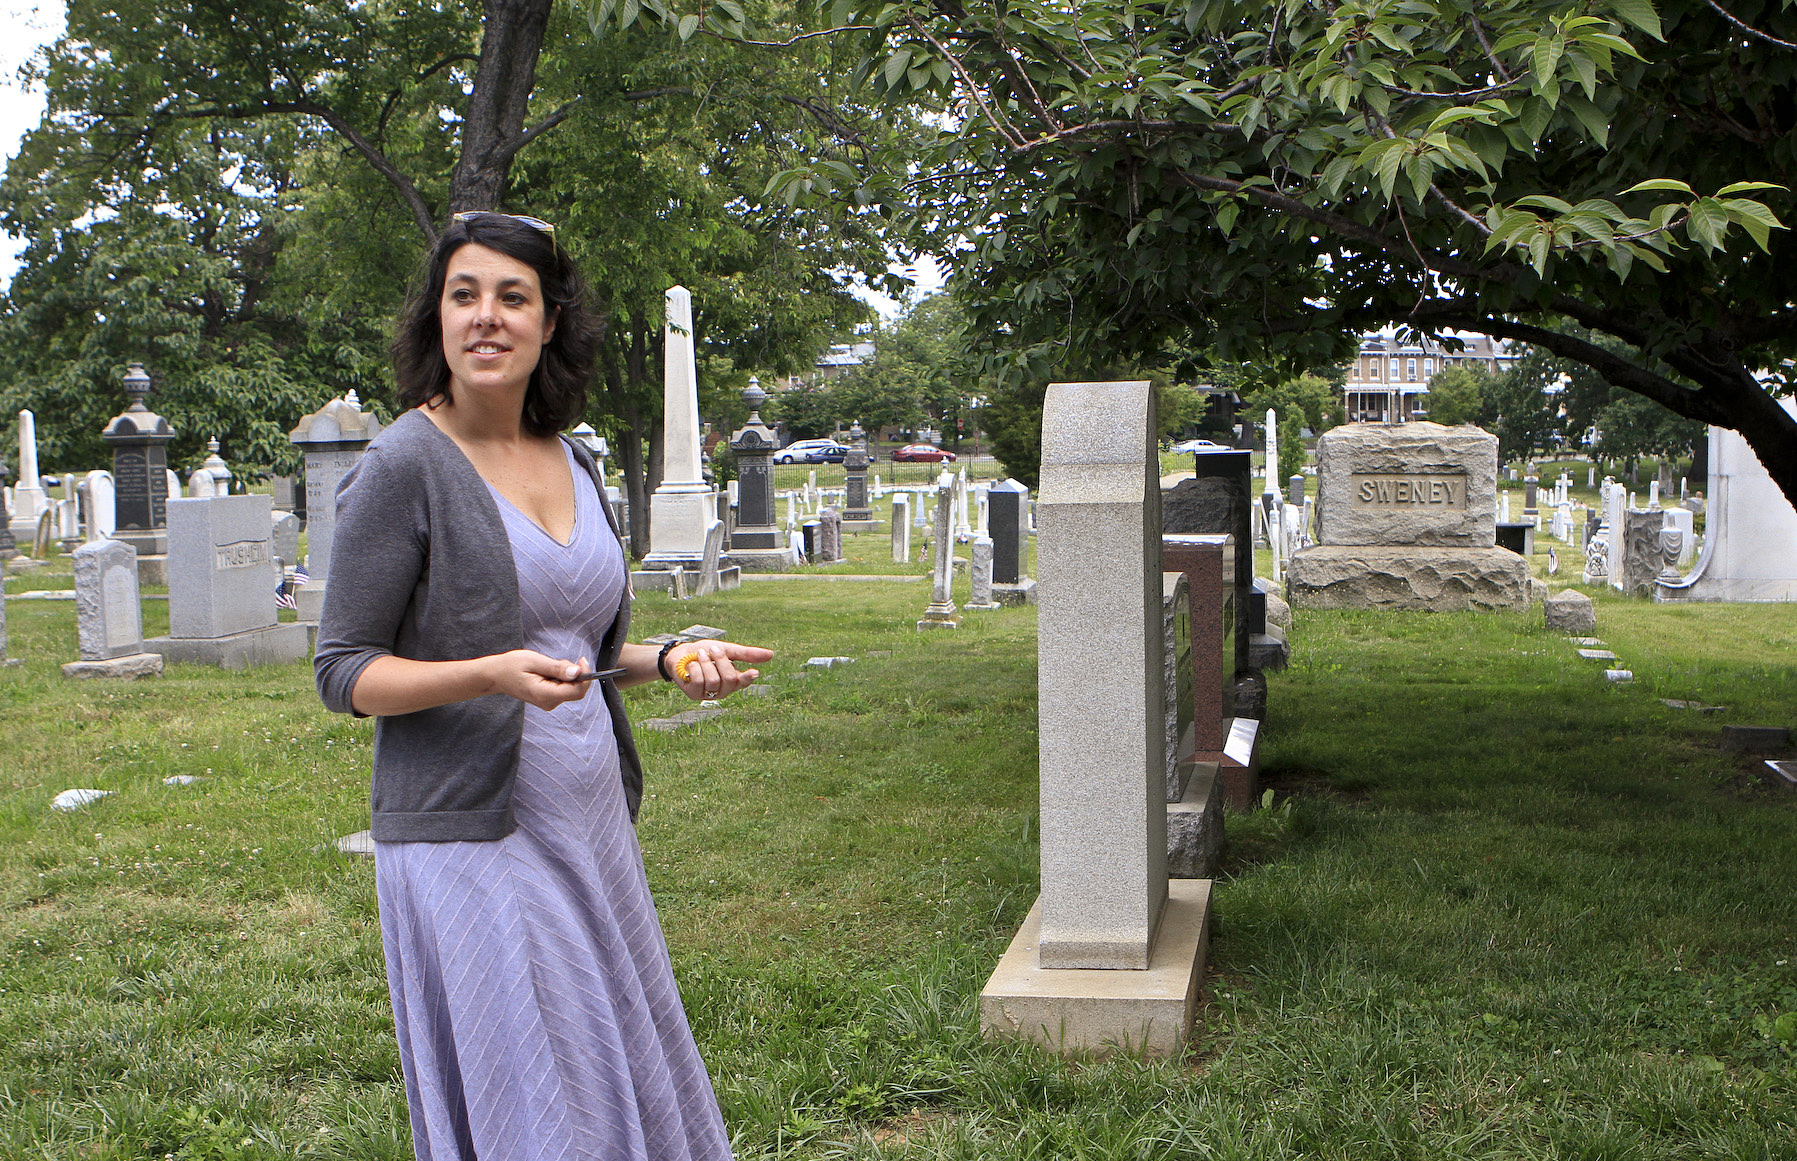 Rebecca Roberts serves as program director at Congressional Cemetery and is the co-author of a new book on the cemetery and its history. Her grandfather Hale Boggs, a representative from Louisiana, has a cenotaph in the cemetery. Boggs was aboard a plane that disappeared over Alaska in 1972 and presumably crashed; his body has never been recovered.